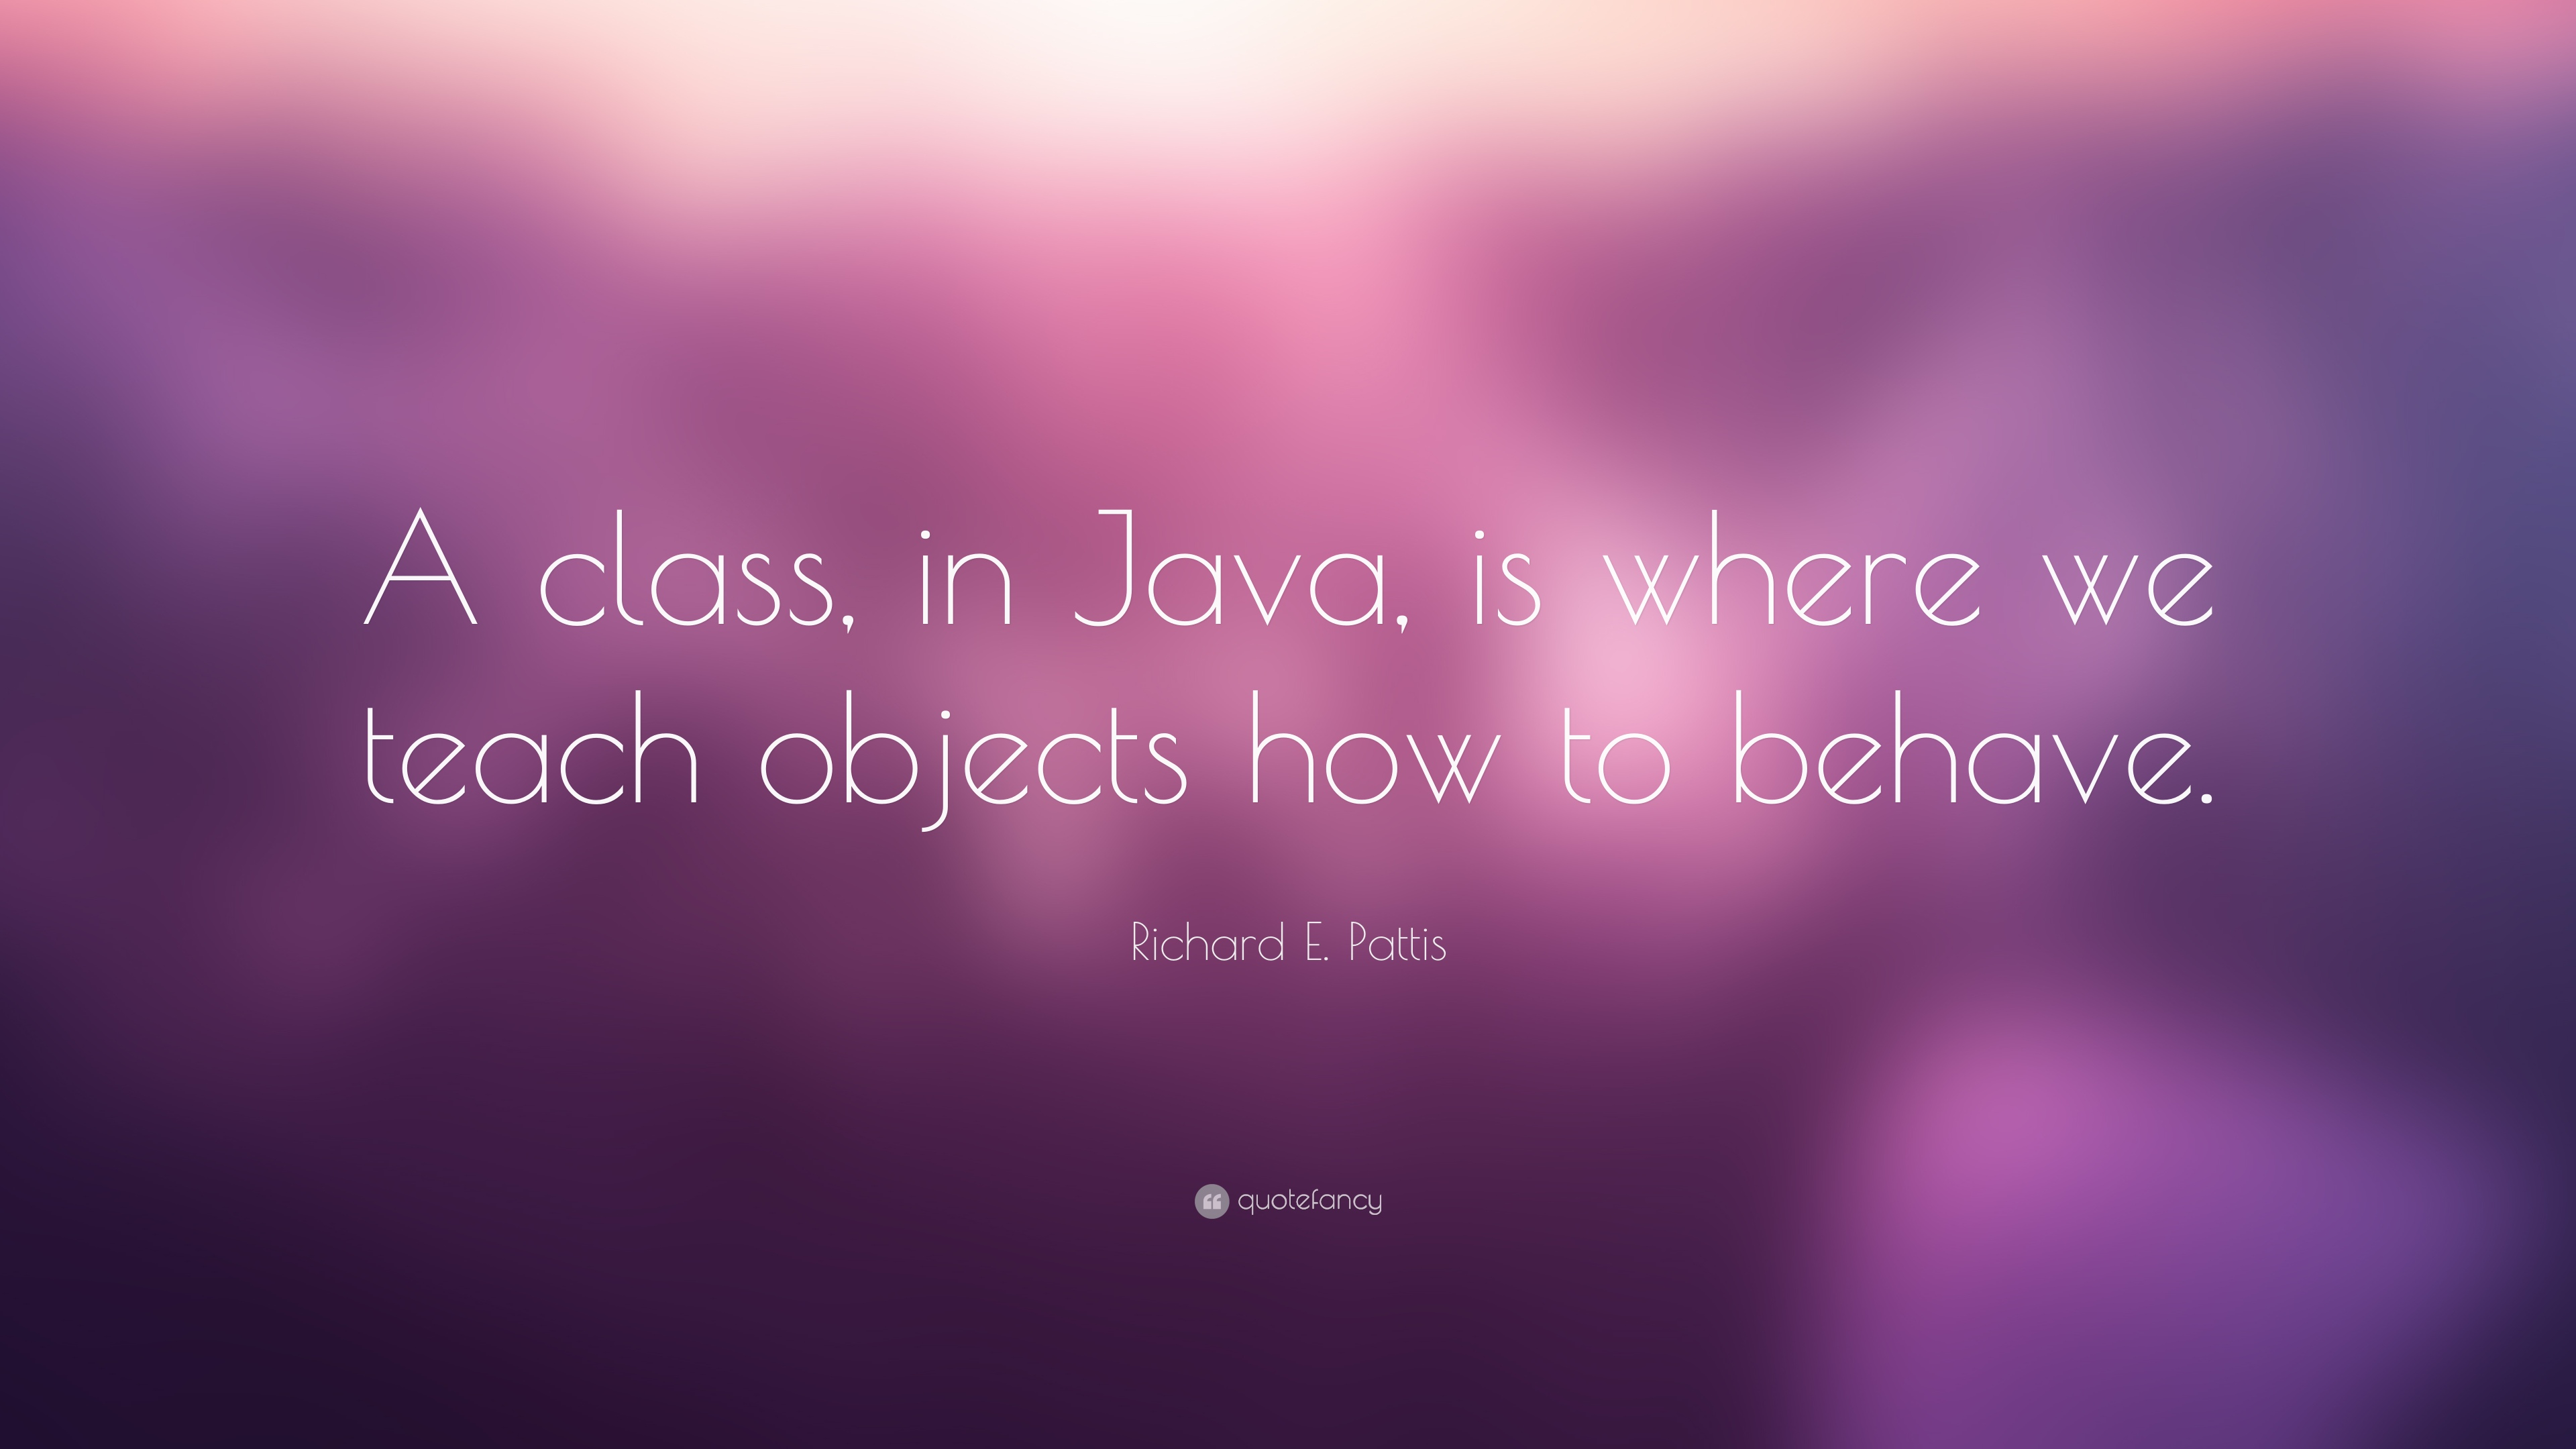 Richard e pattis quote a class in java is where we teach